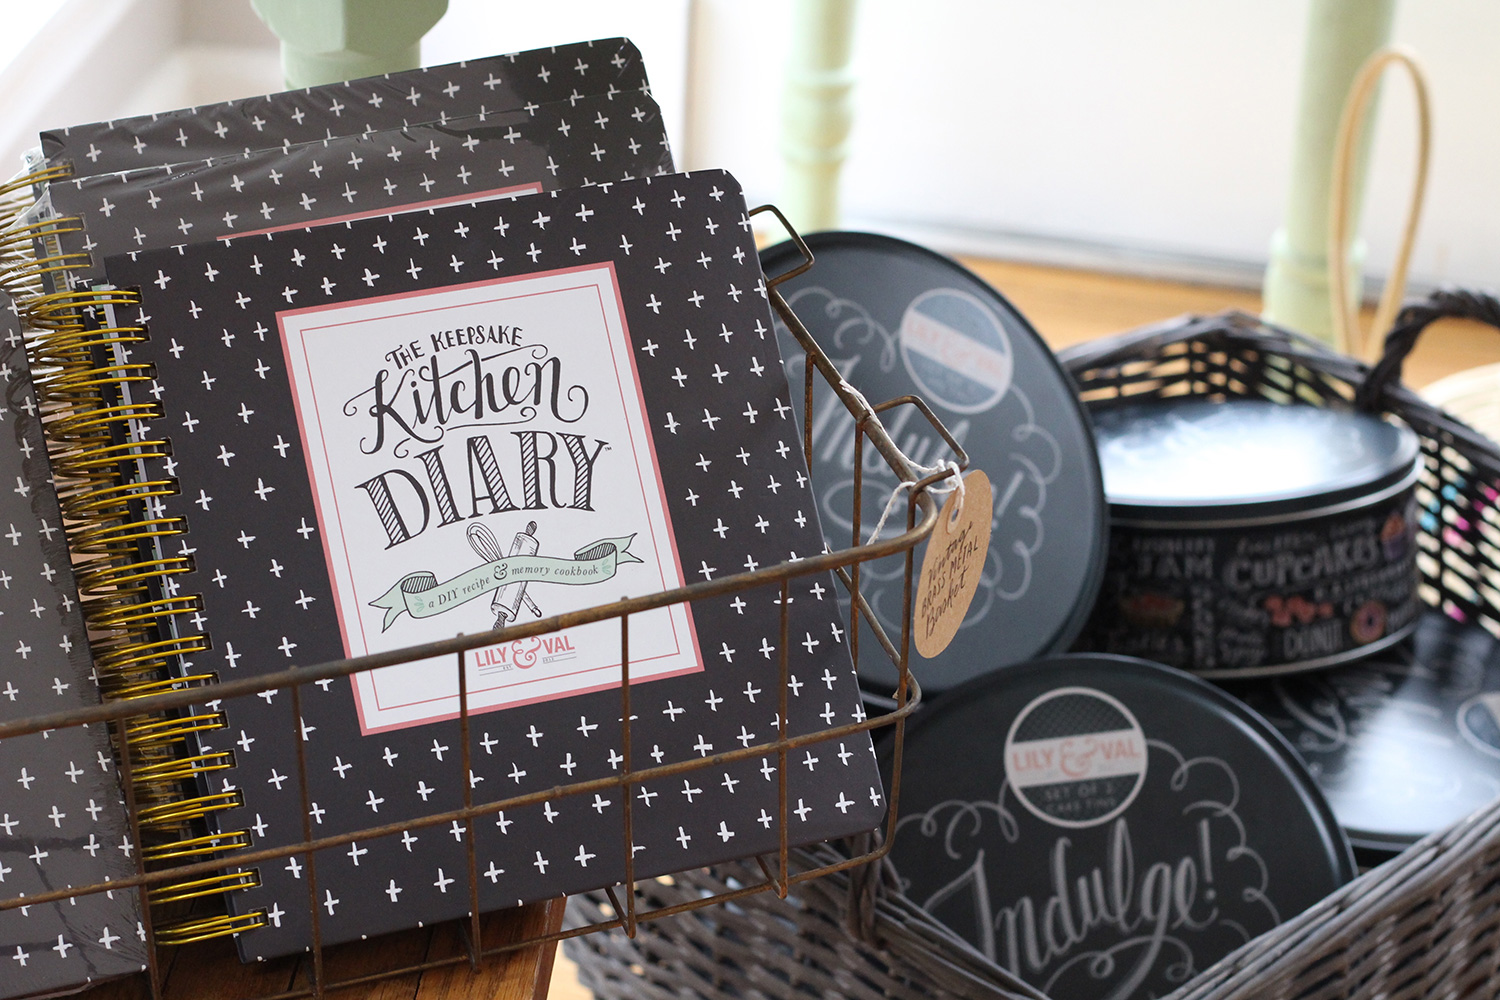 The Keepsake Kitchen Diary is a perfect gift for a bridal shower or housewarming